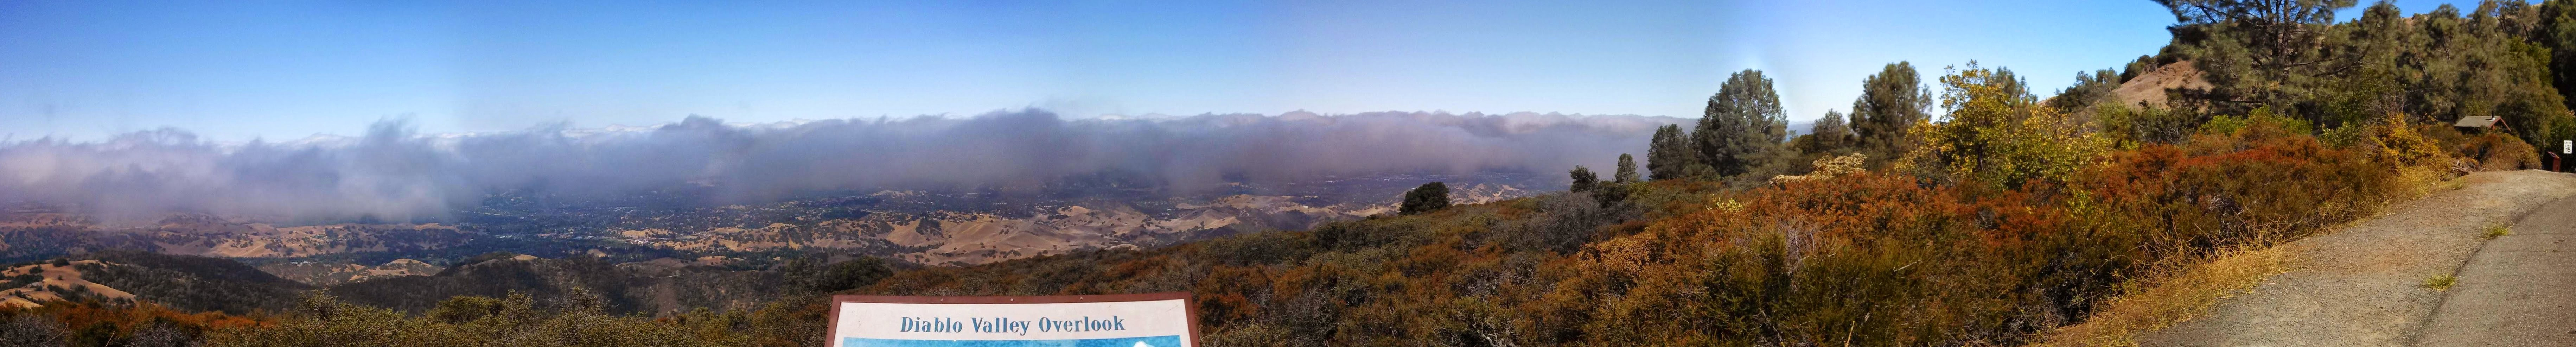 Sometimes you gotta stop and take in the view. This is right before the last climb to the summit on Mt. Diablo.